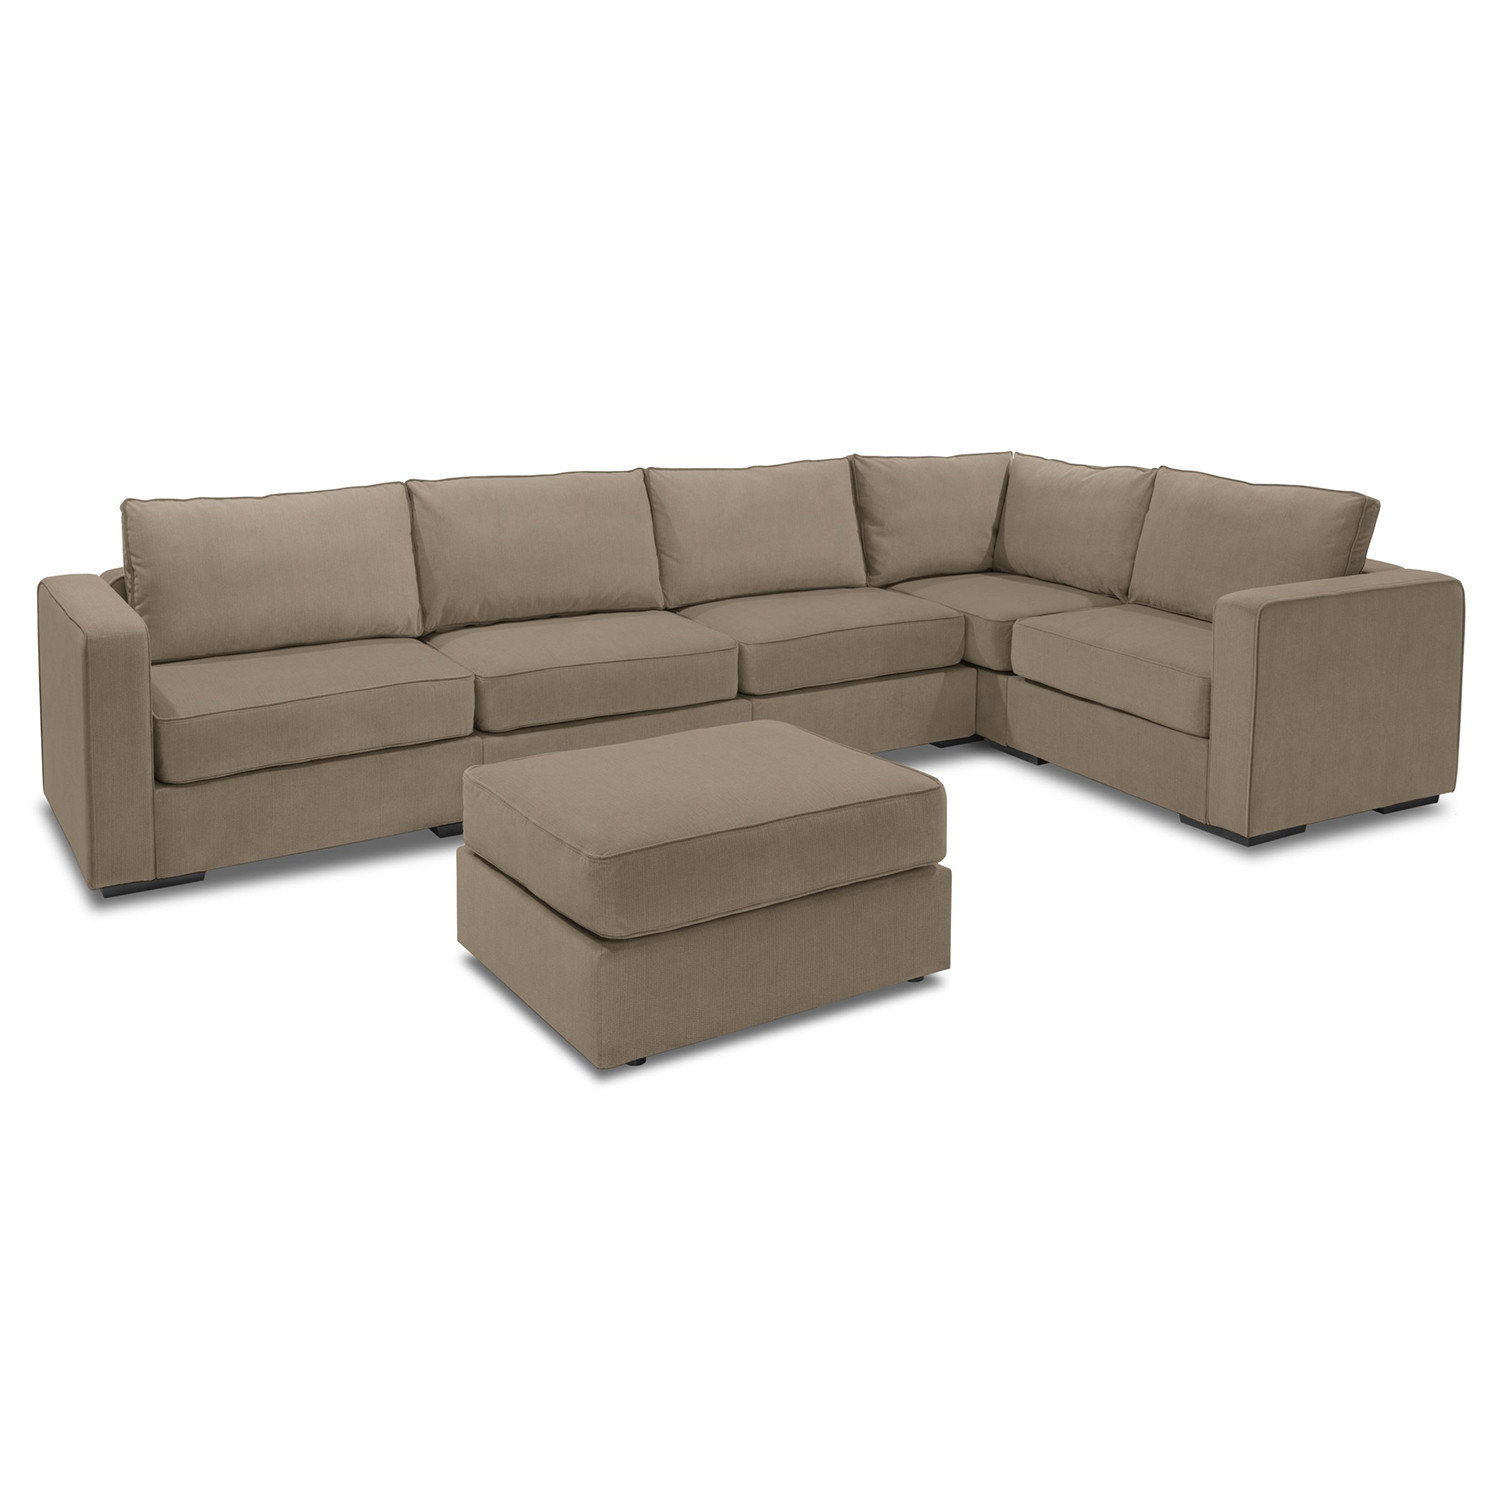 Remarkable 5 Series Sactionals Large L Sectional Taupe Lovesac Unemploymentrelief Wooden Chair Designs For Living Room Unemploymentrelieforg